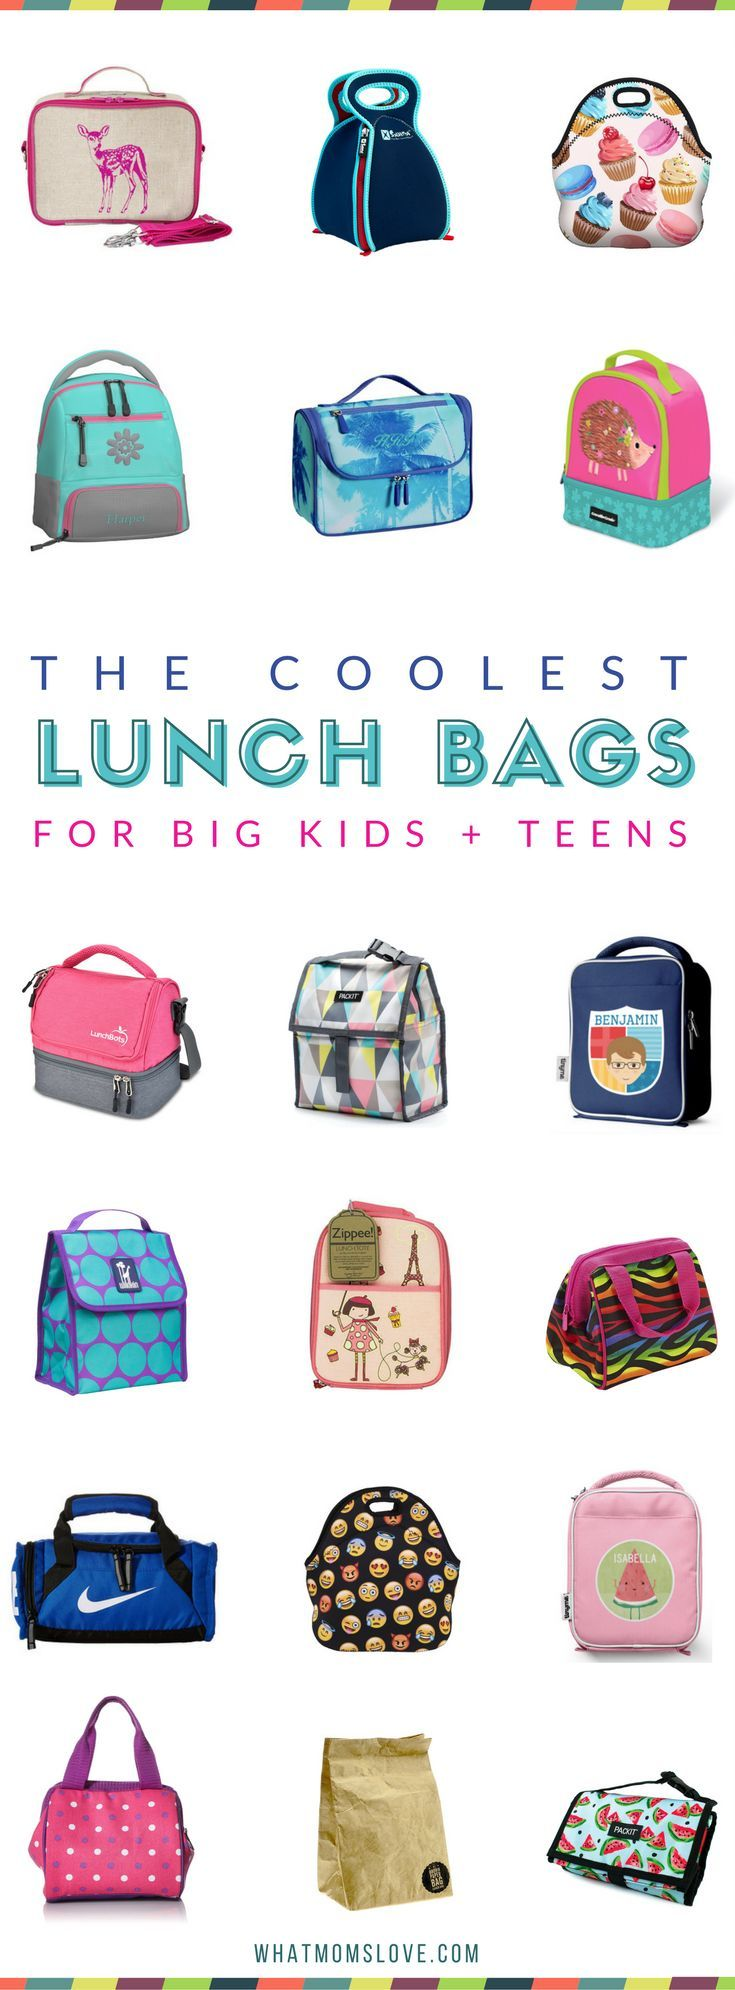 Best lunch bags for kids and teens | Insulated, innovative, cute and stylish lunch bag and box ideas for back to school. Emojis, personalized, patterns and more unique designs.